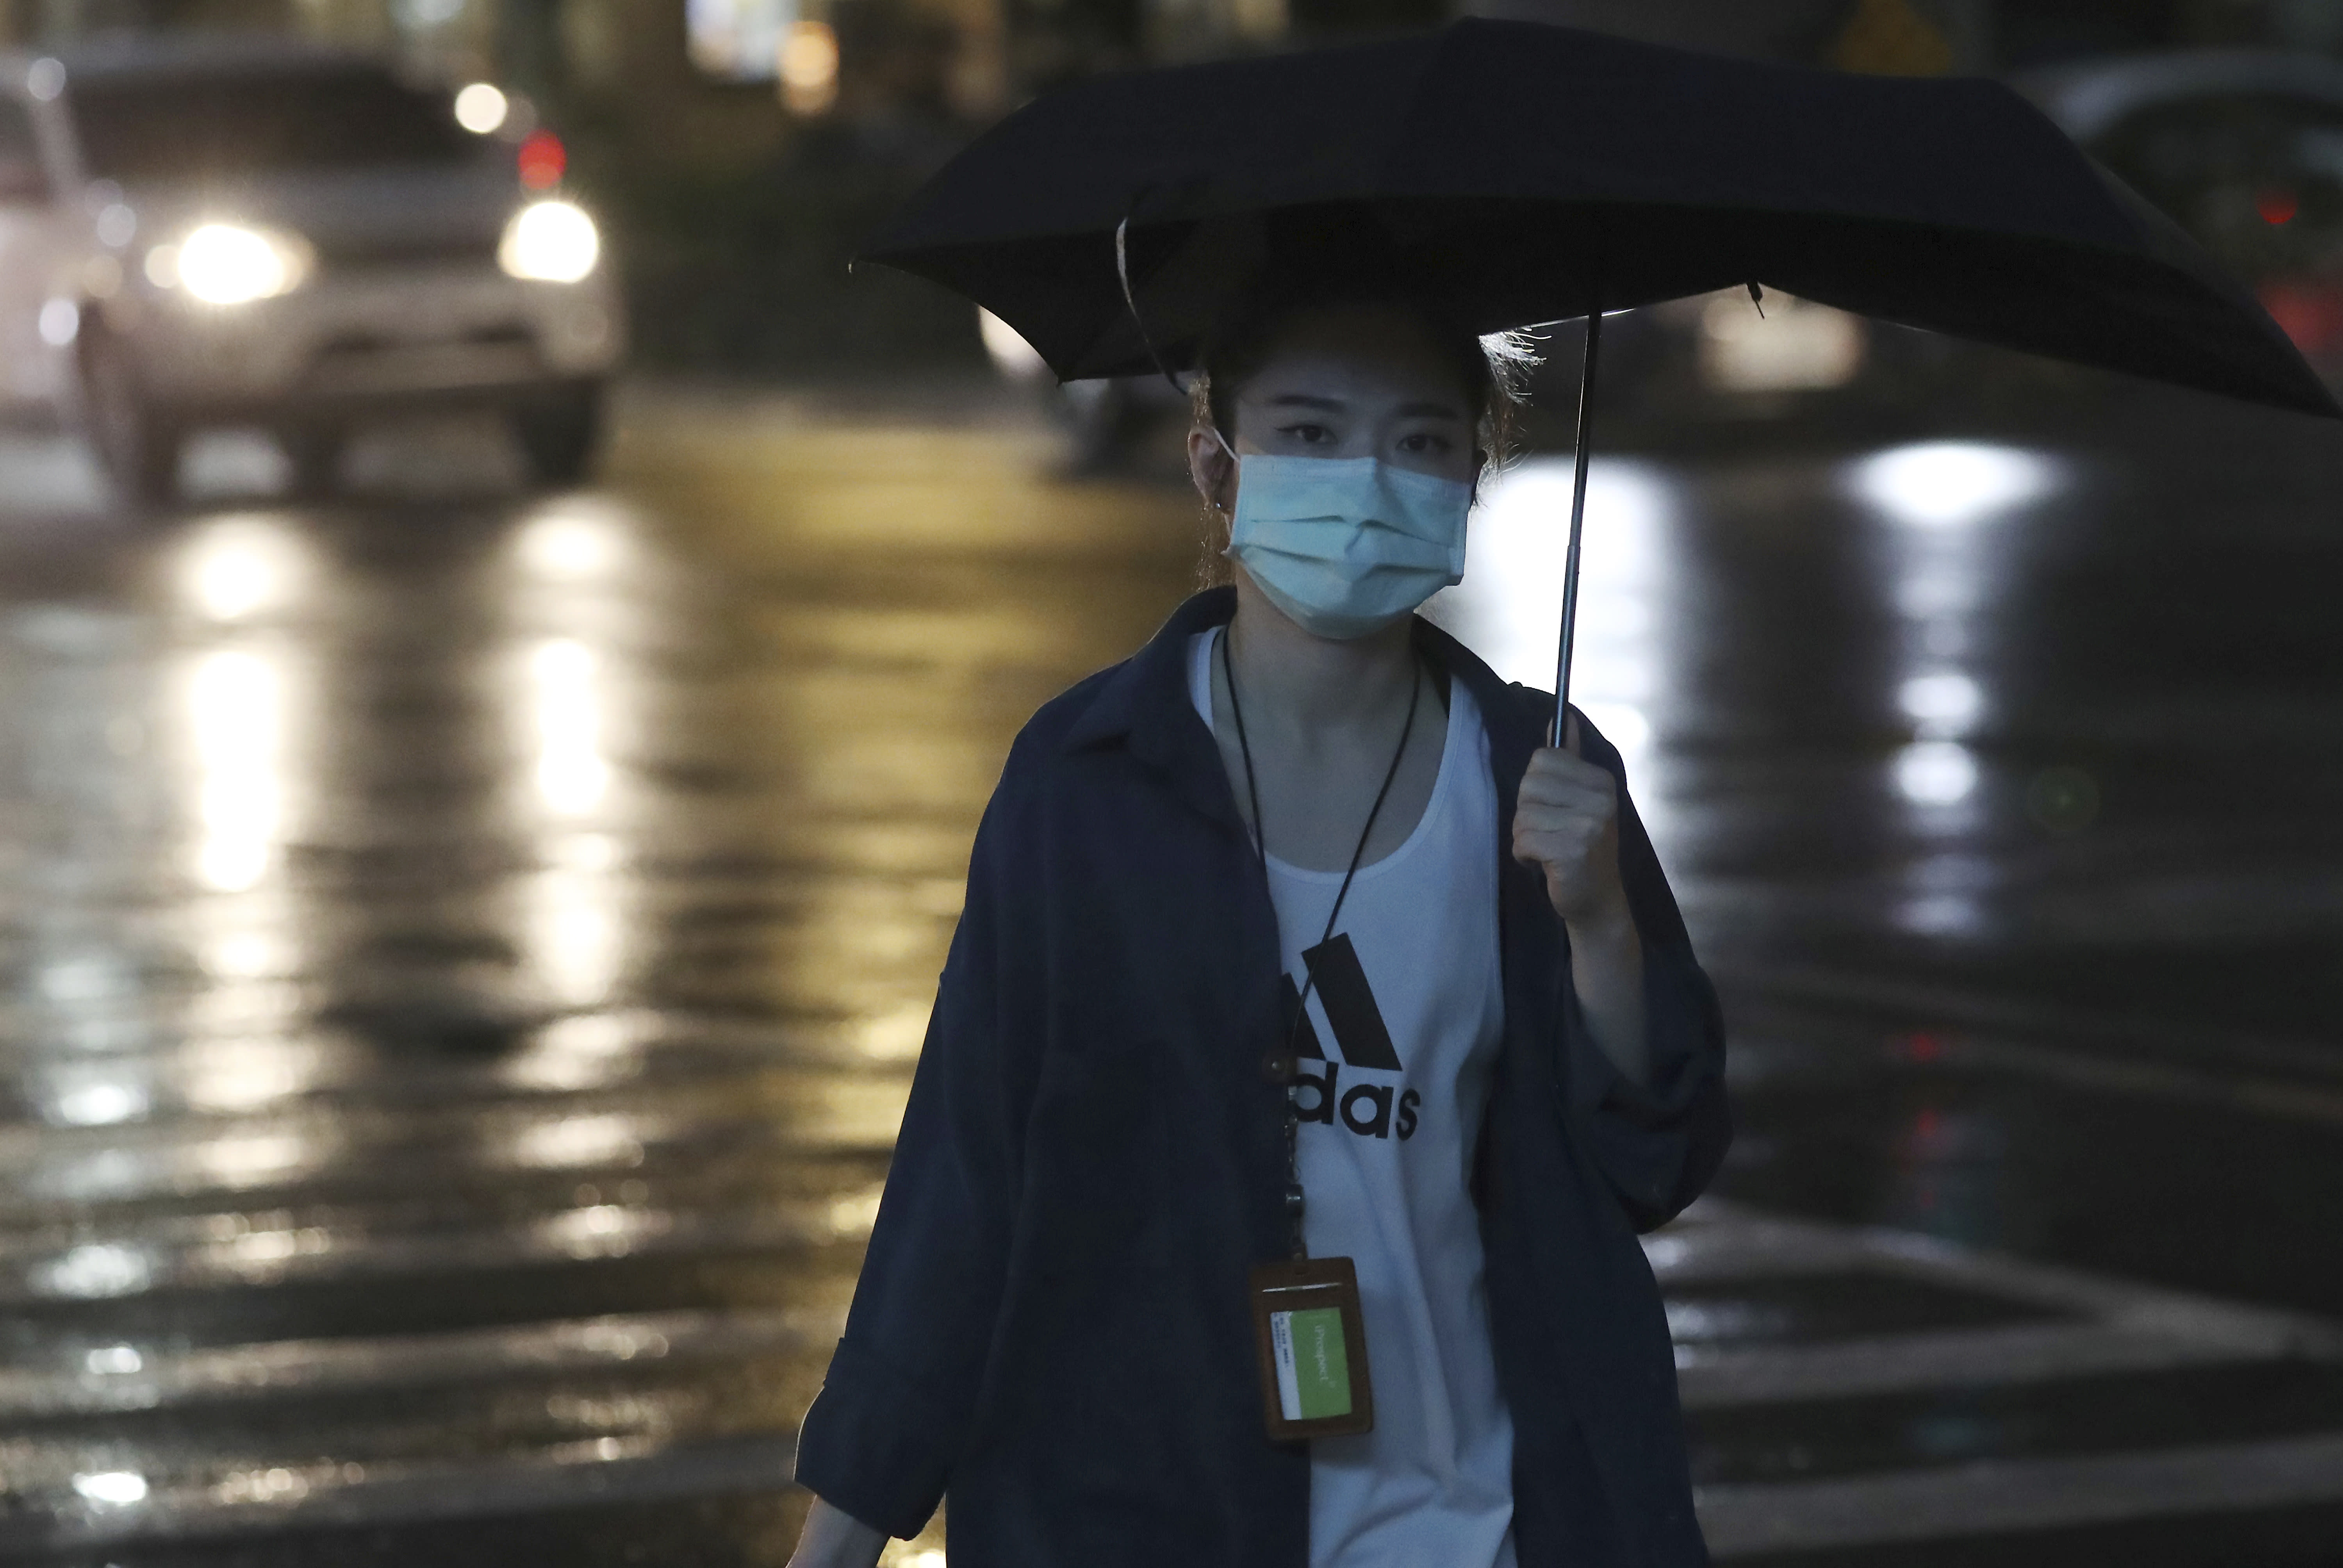 People wear face masks to protect against the spread of coronavirus in Taipei, Taiwan, Saturday, Oct. 17, 2020. (AP Photo/Chiang Ying-ying)